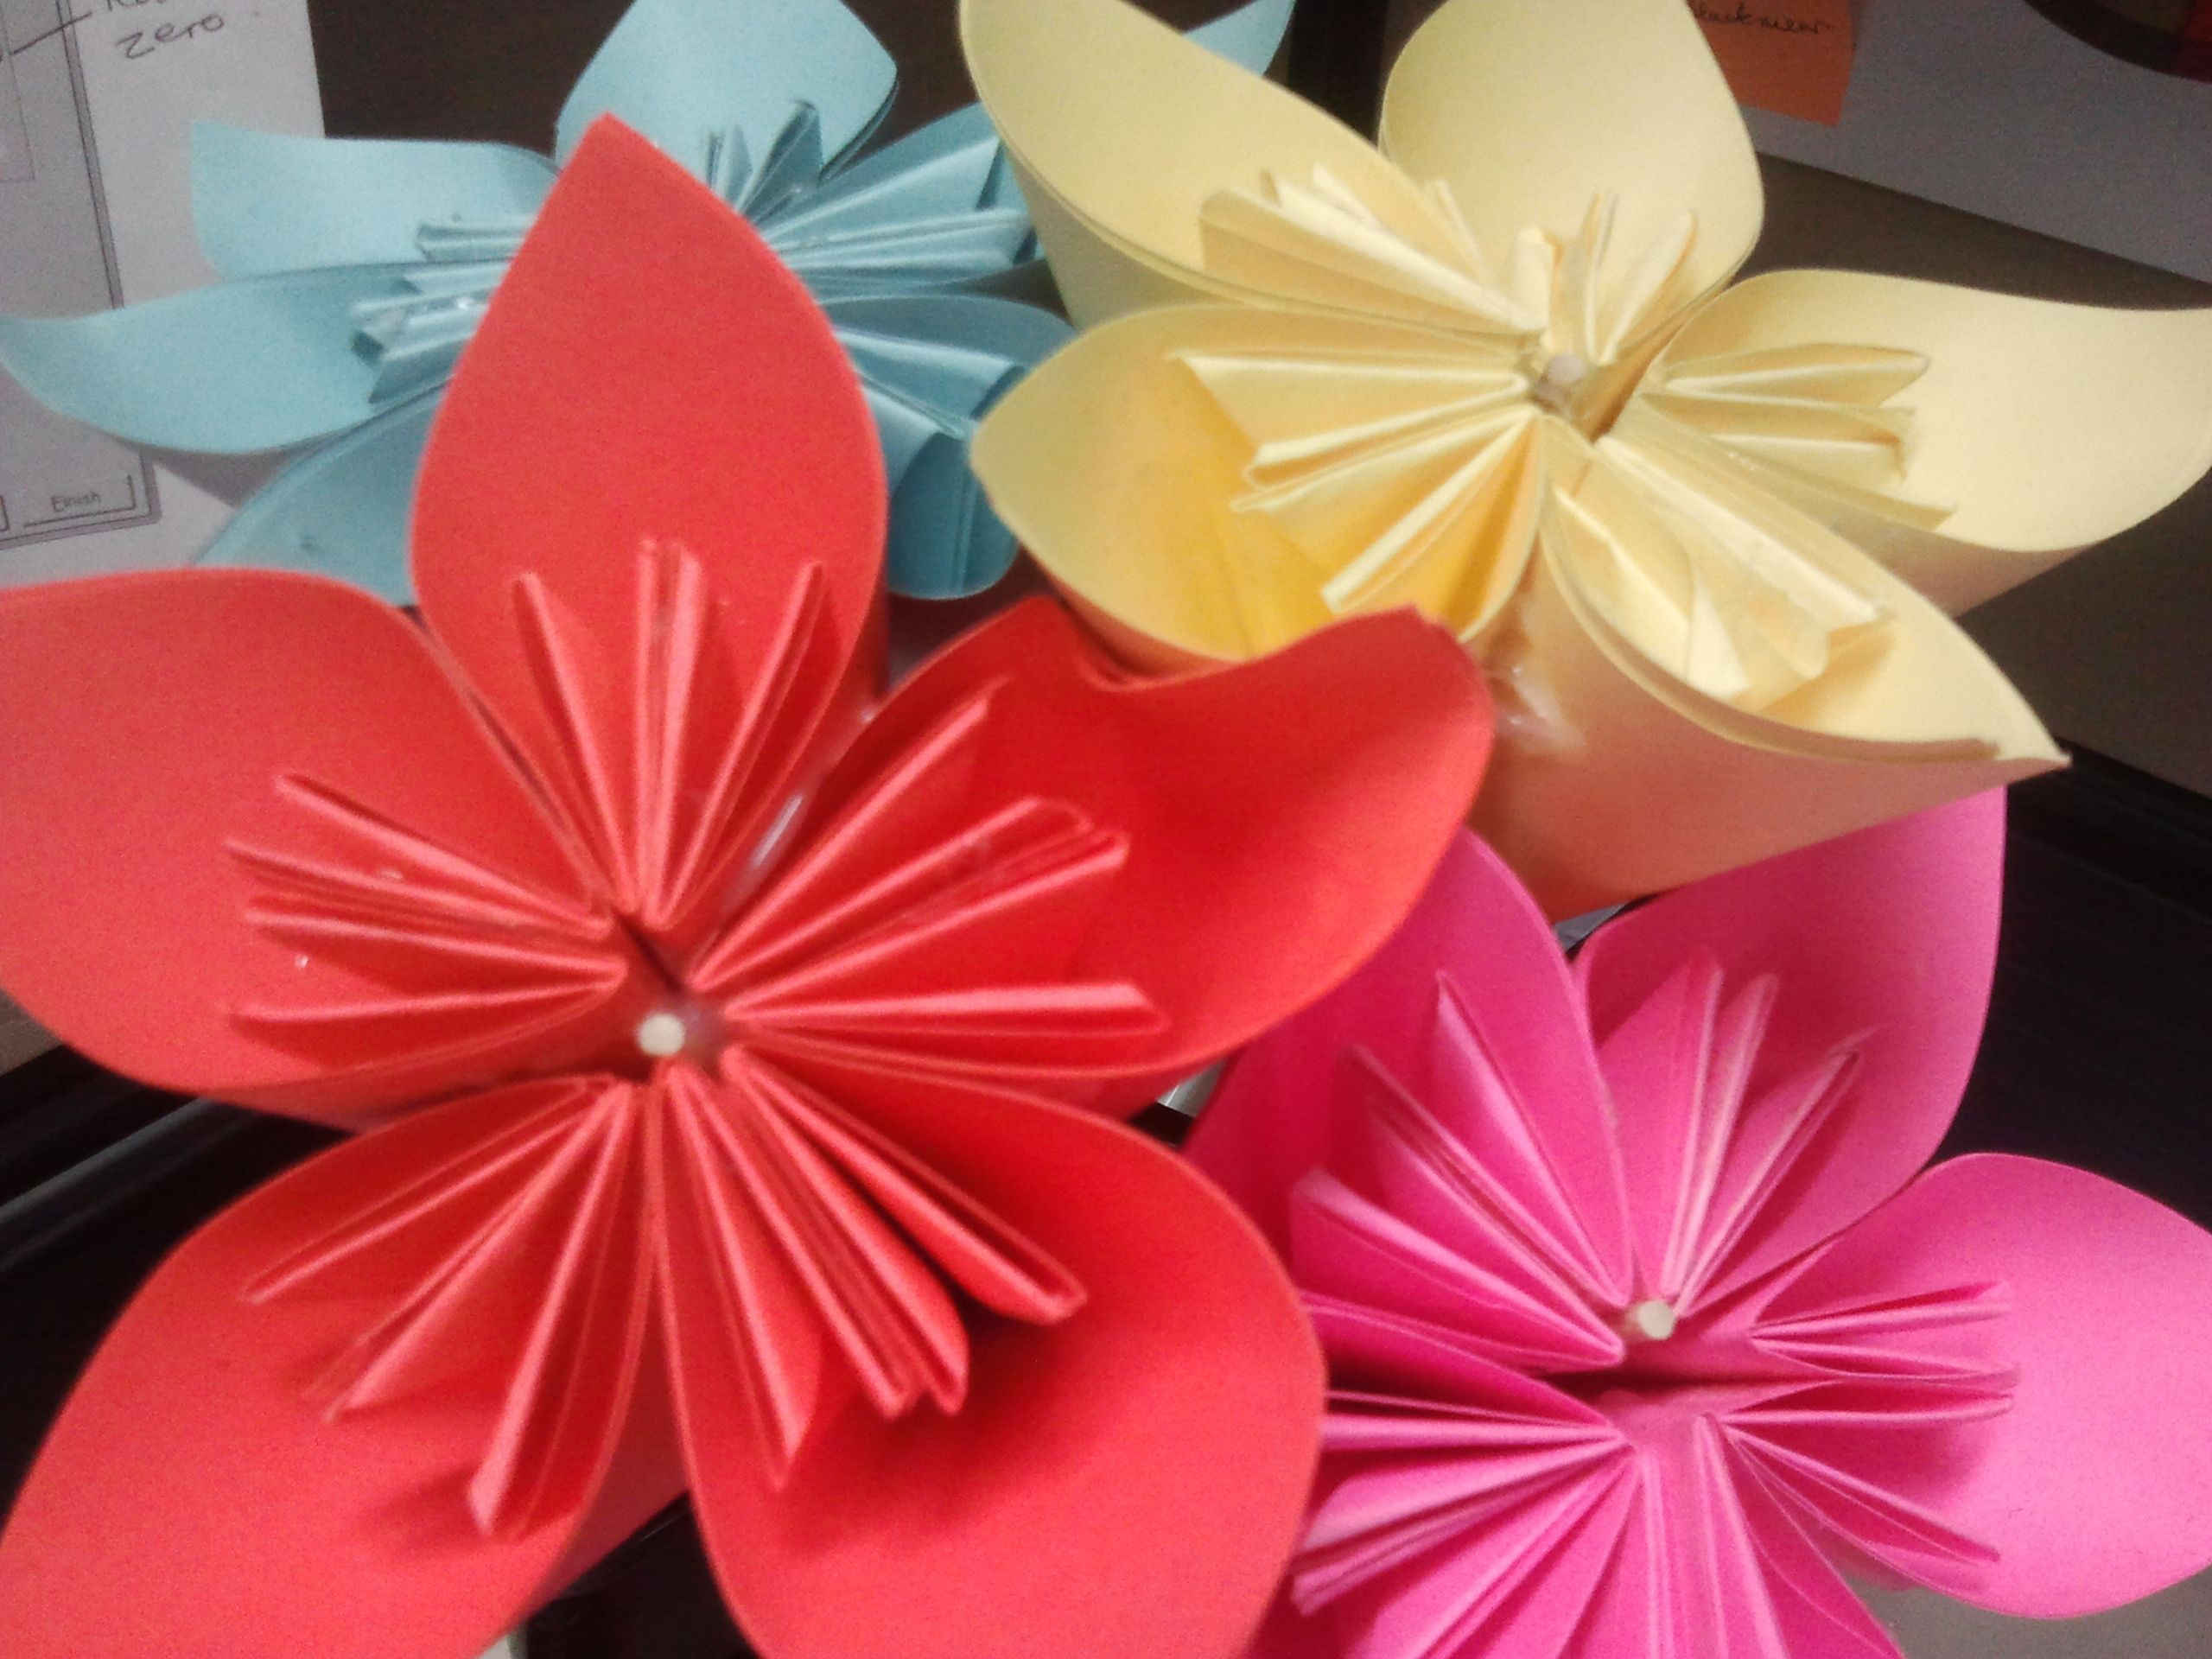 Cardstock paper flowers handmade by me love them do it yourself cardstock paper flowers handmade by me love them do it yourselfpaper mightylinksfo Images